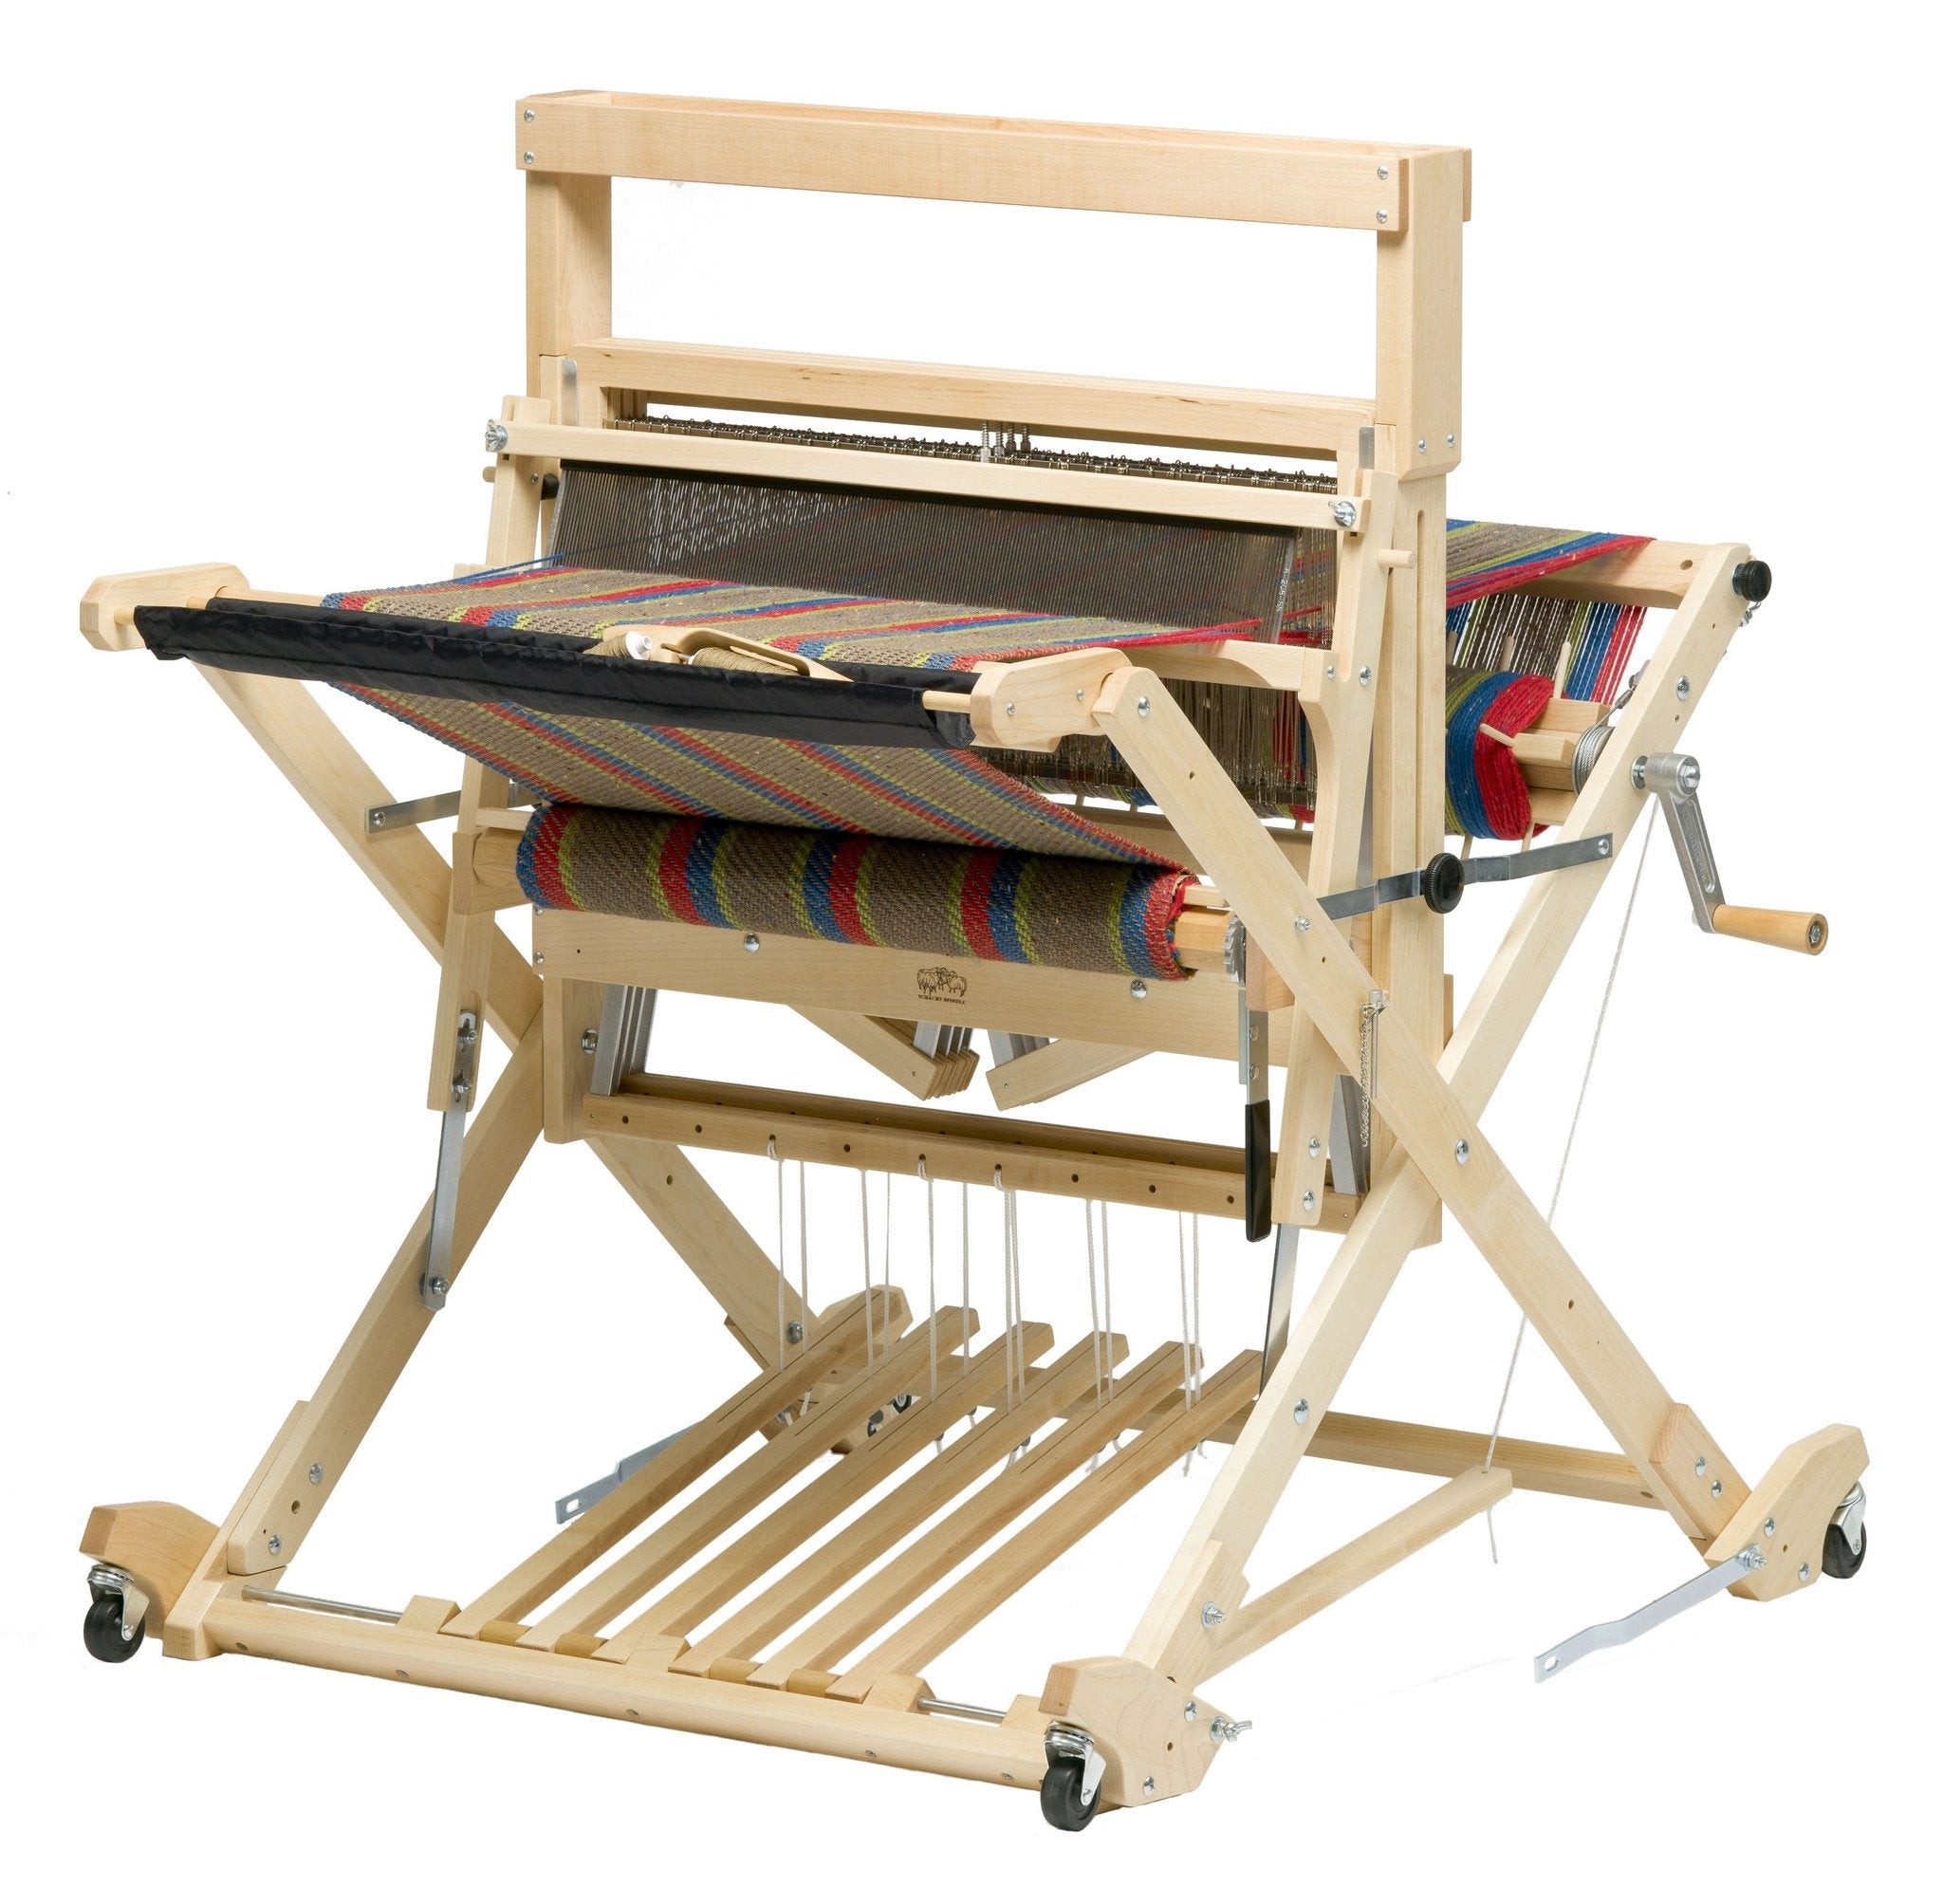 Floor Looms For Sale: Schacht Baby Wolf Loom